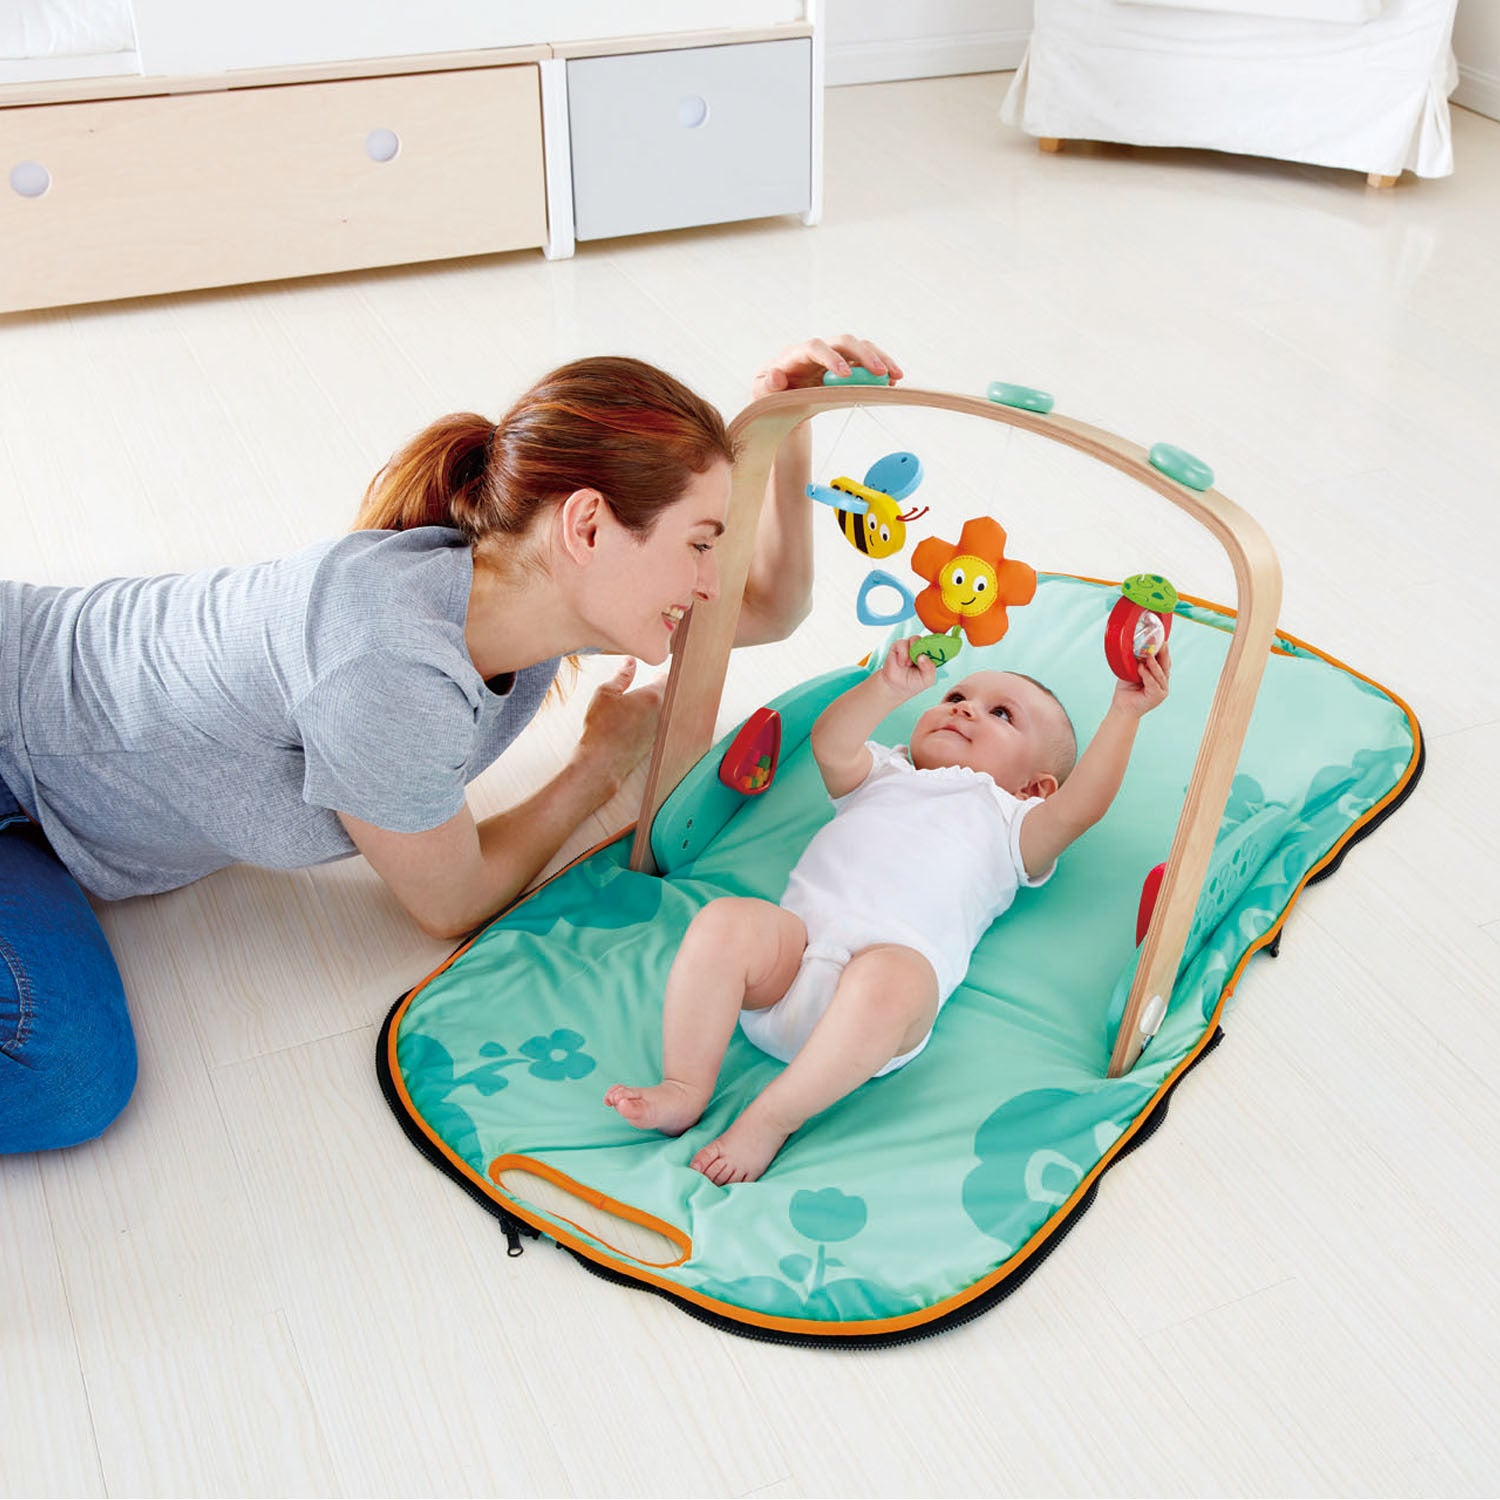 Hape: Portable Baby Gym